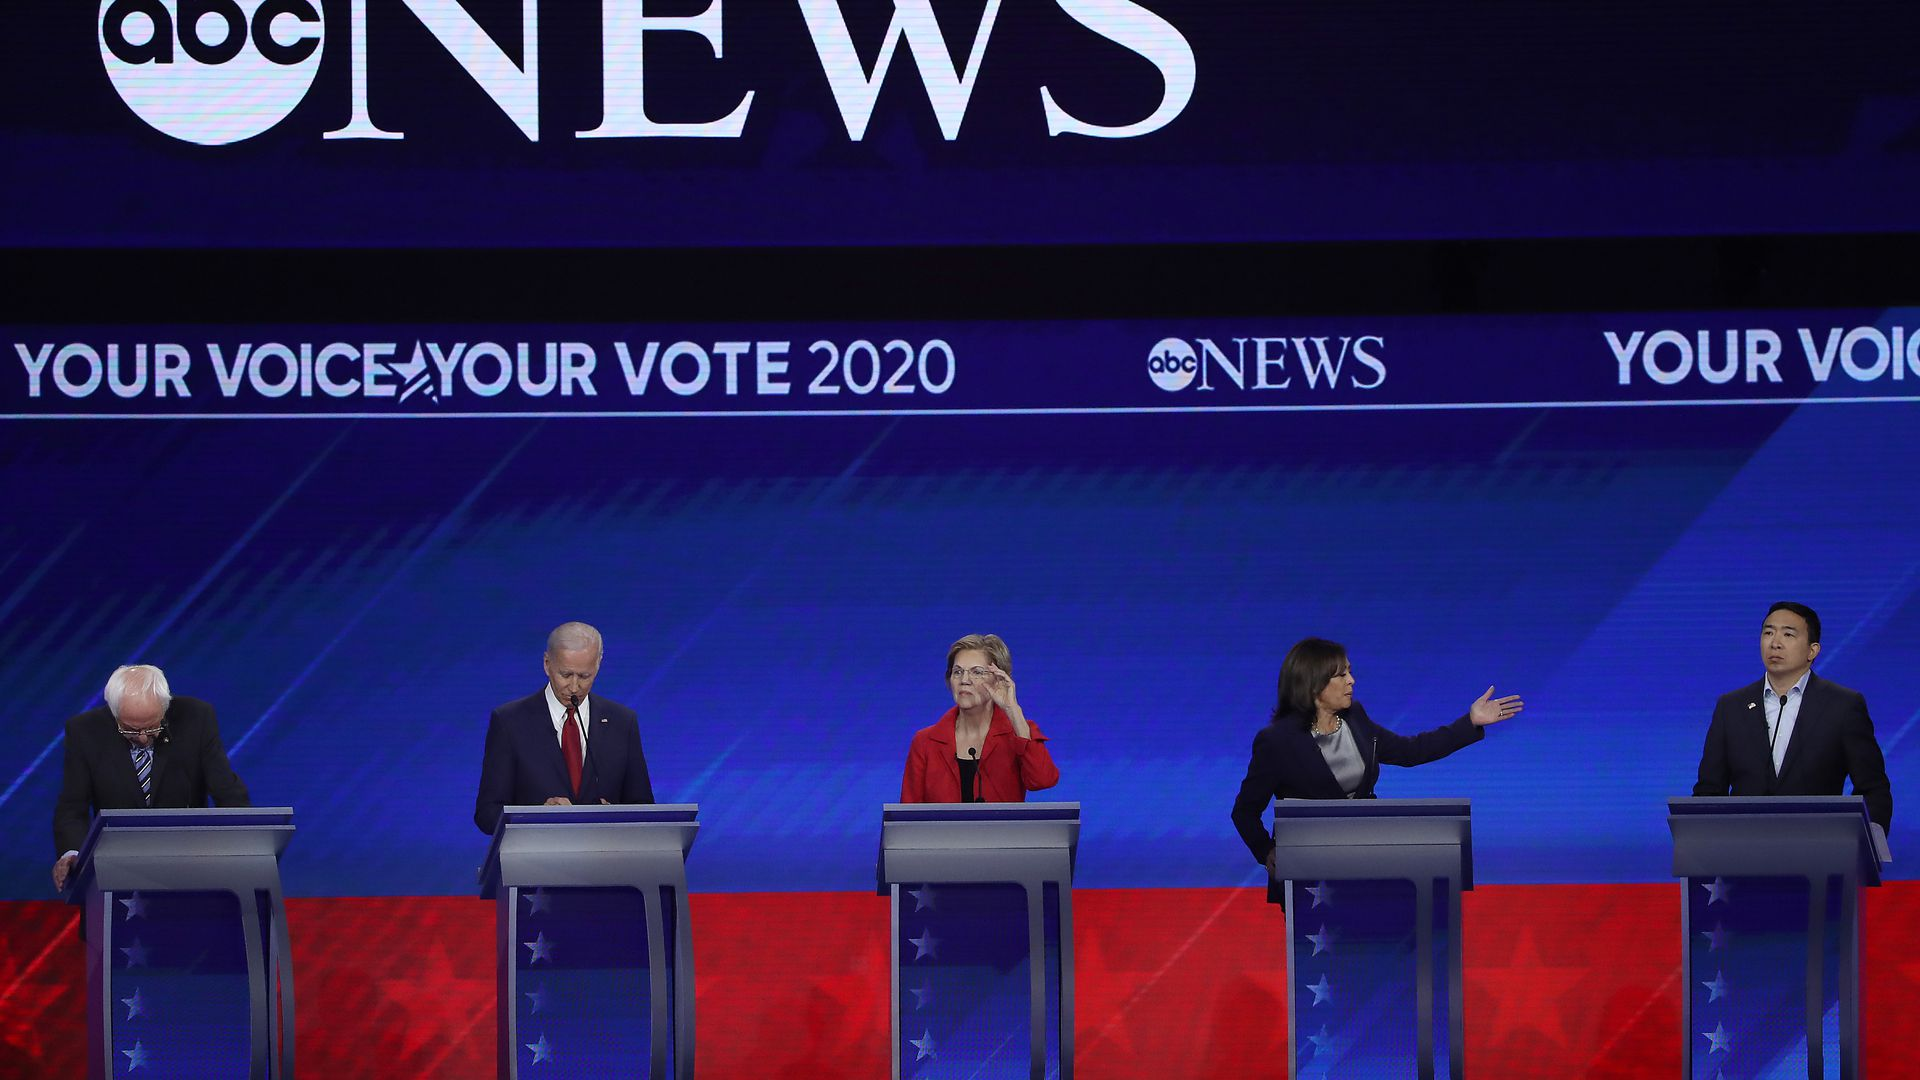 DNC raises qualifying criteria for November debates